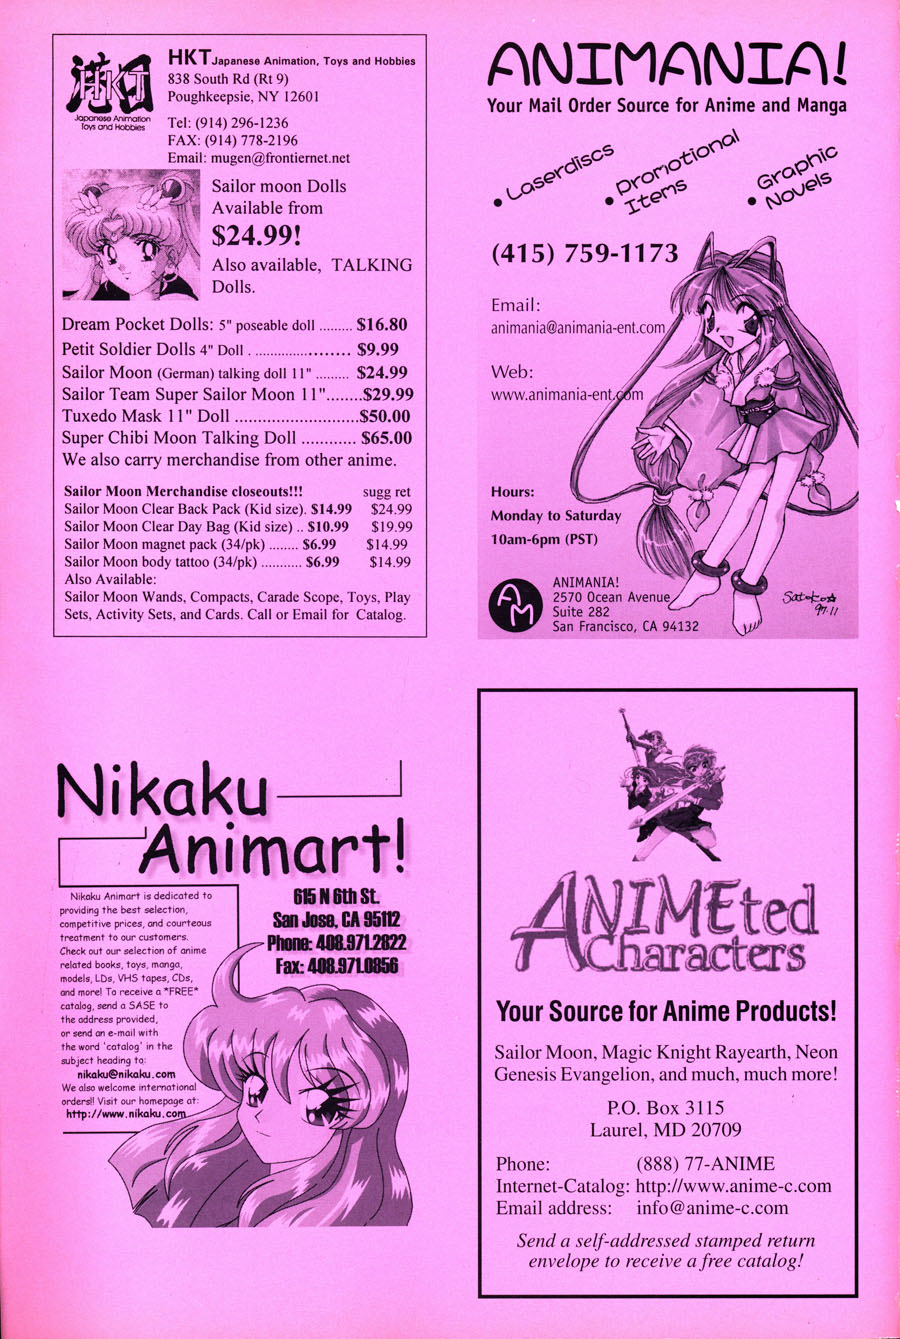 Anime-Retail-Ads-1998-animania-nikaku-animart